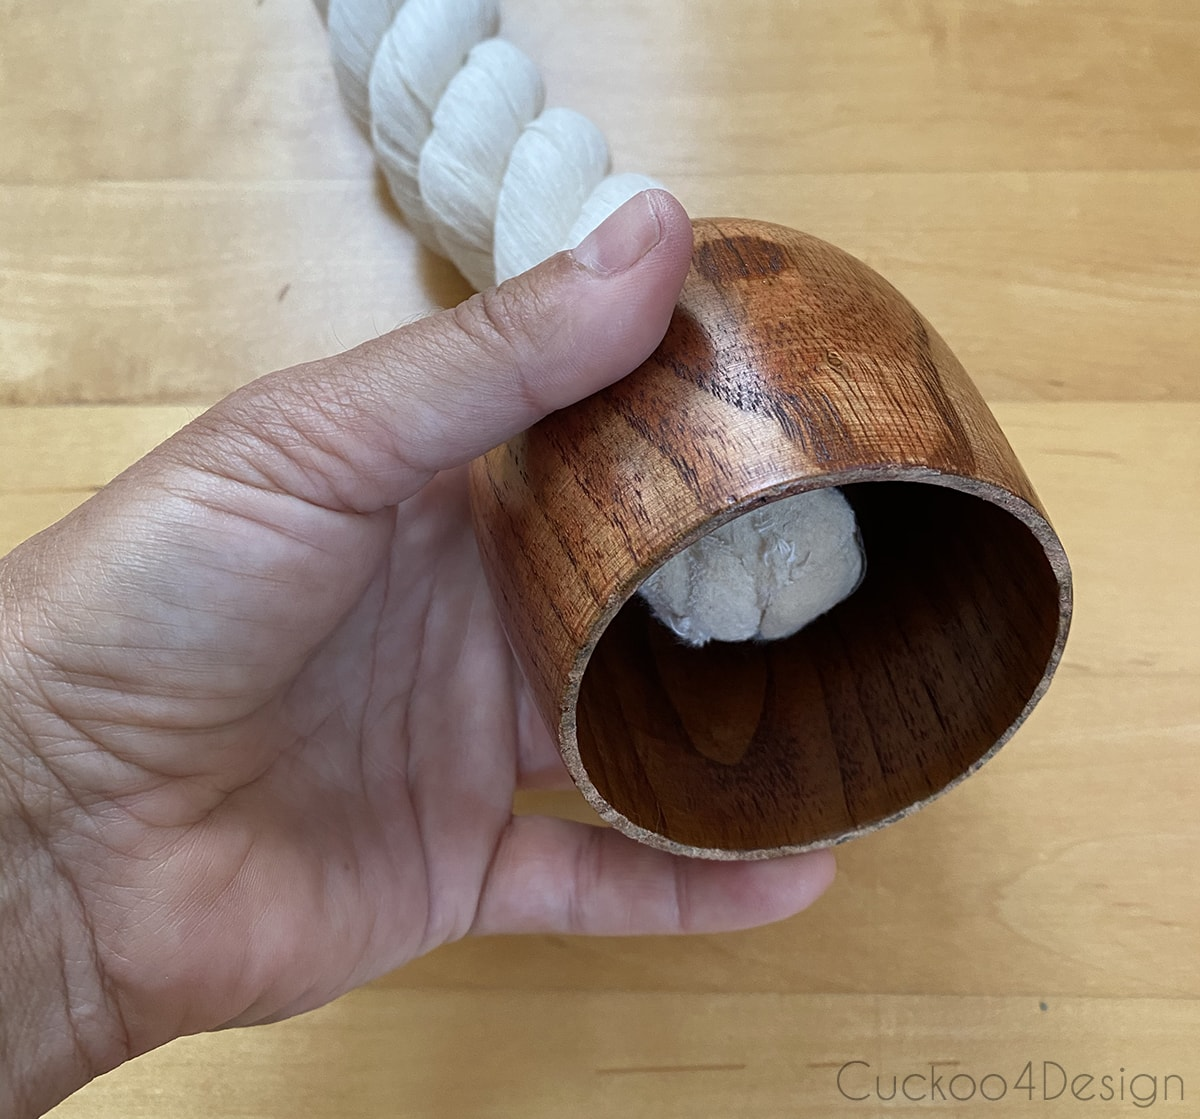 threading cotton rope through the wooden cup